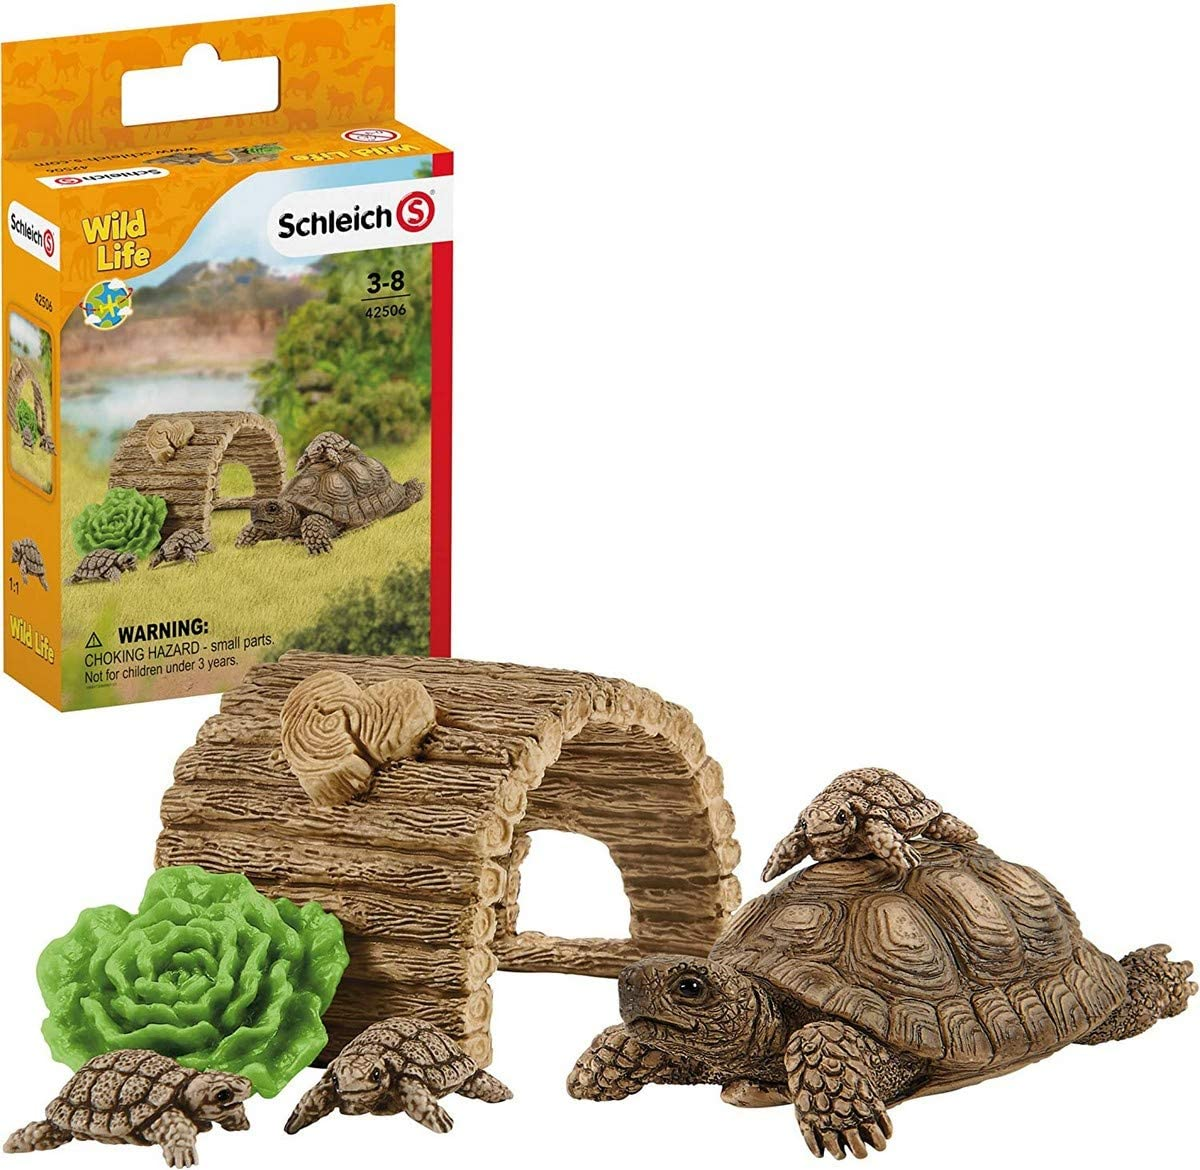 Schleich Wild Life 6-Piece Tortoise Toy Figure with Hatchlings and Turtle Home Playset for Kids Ages 3-8